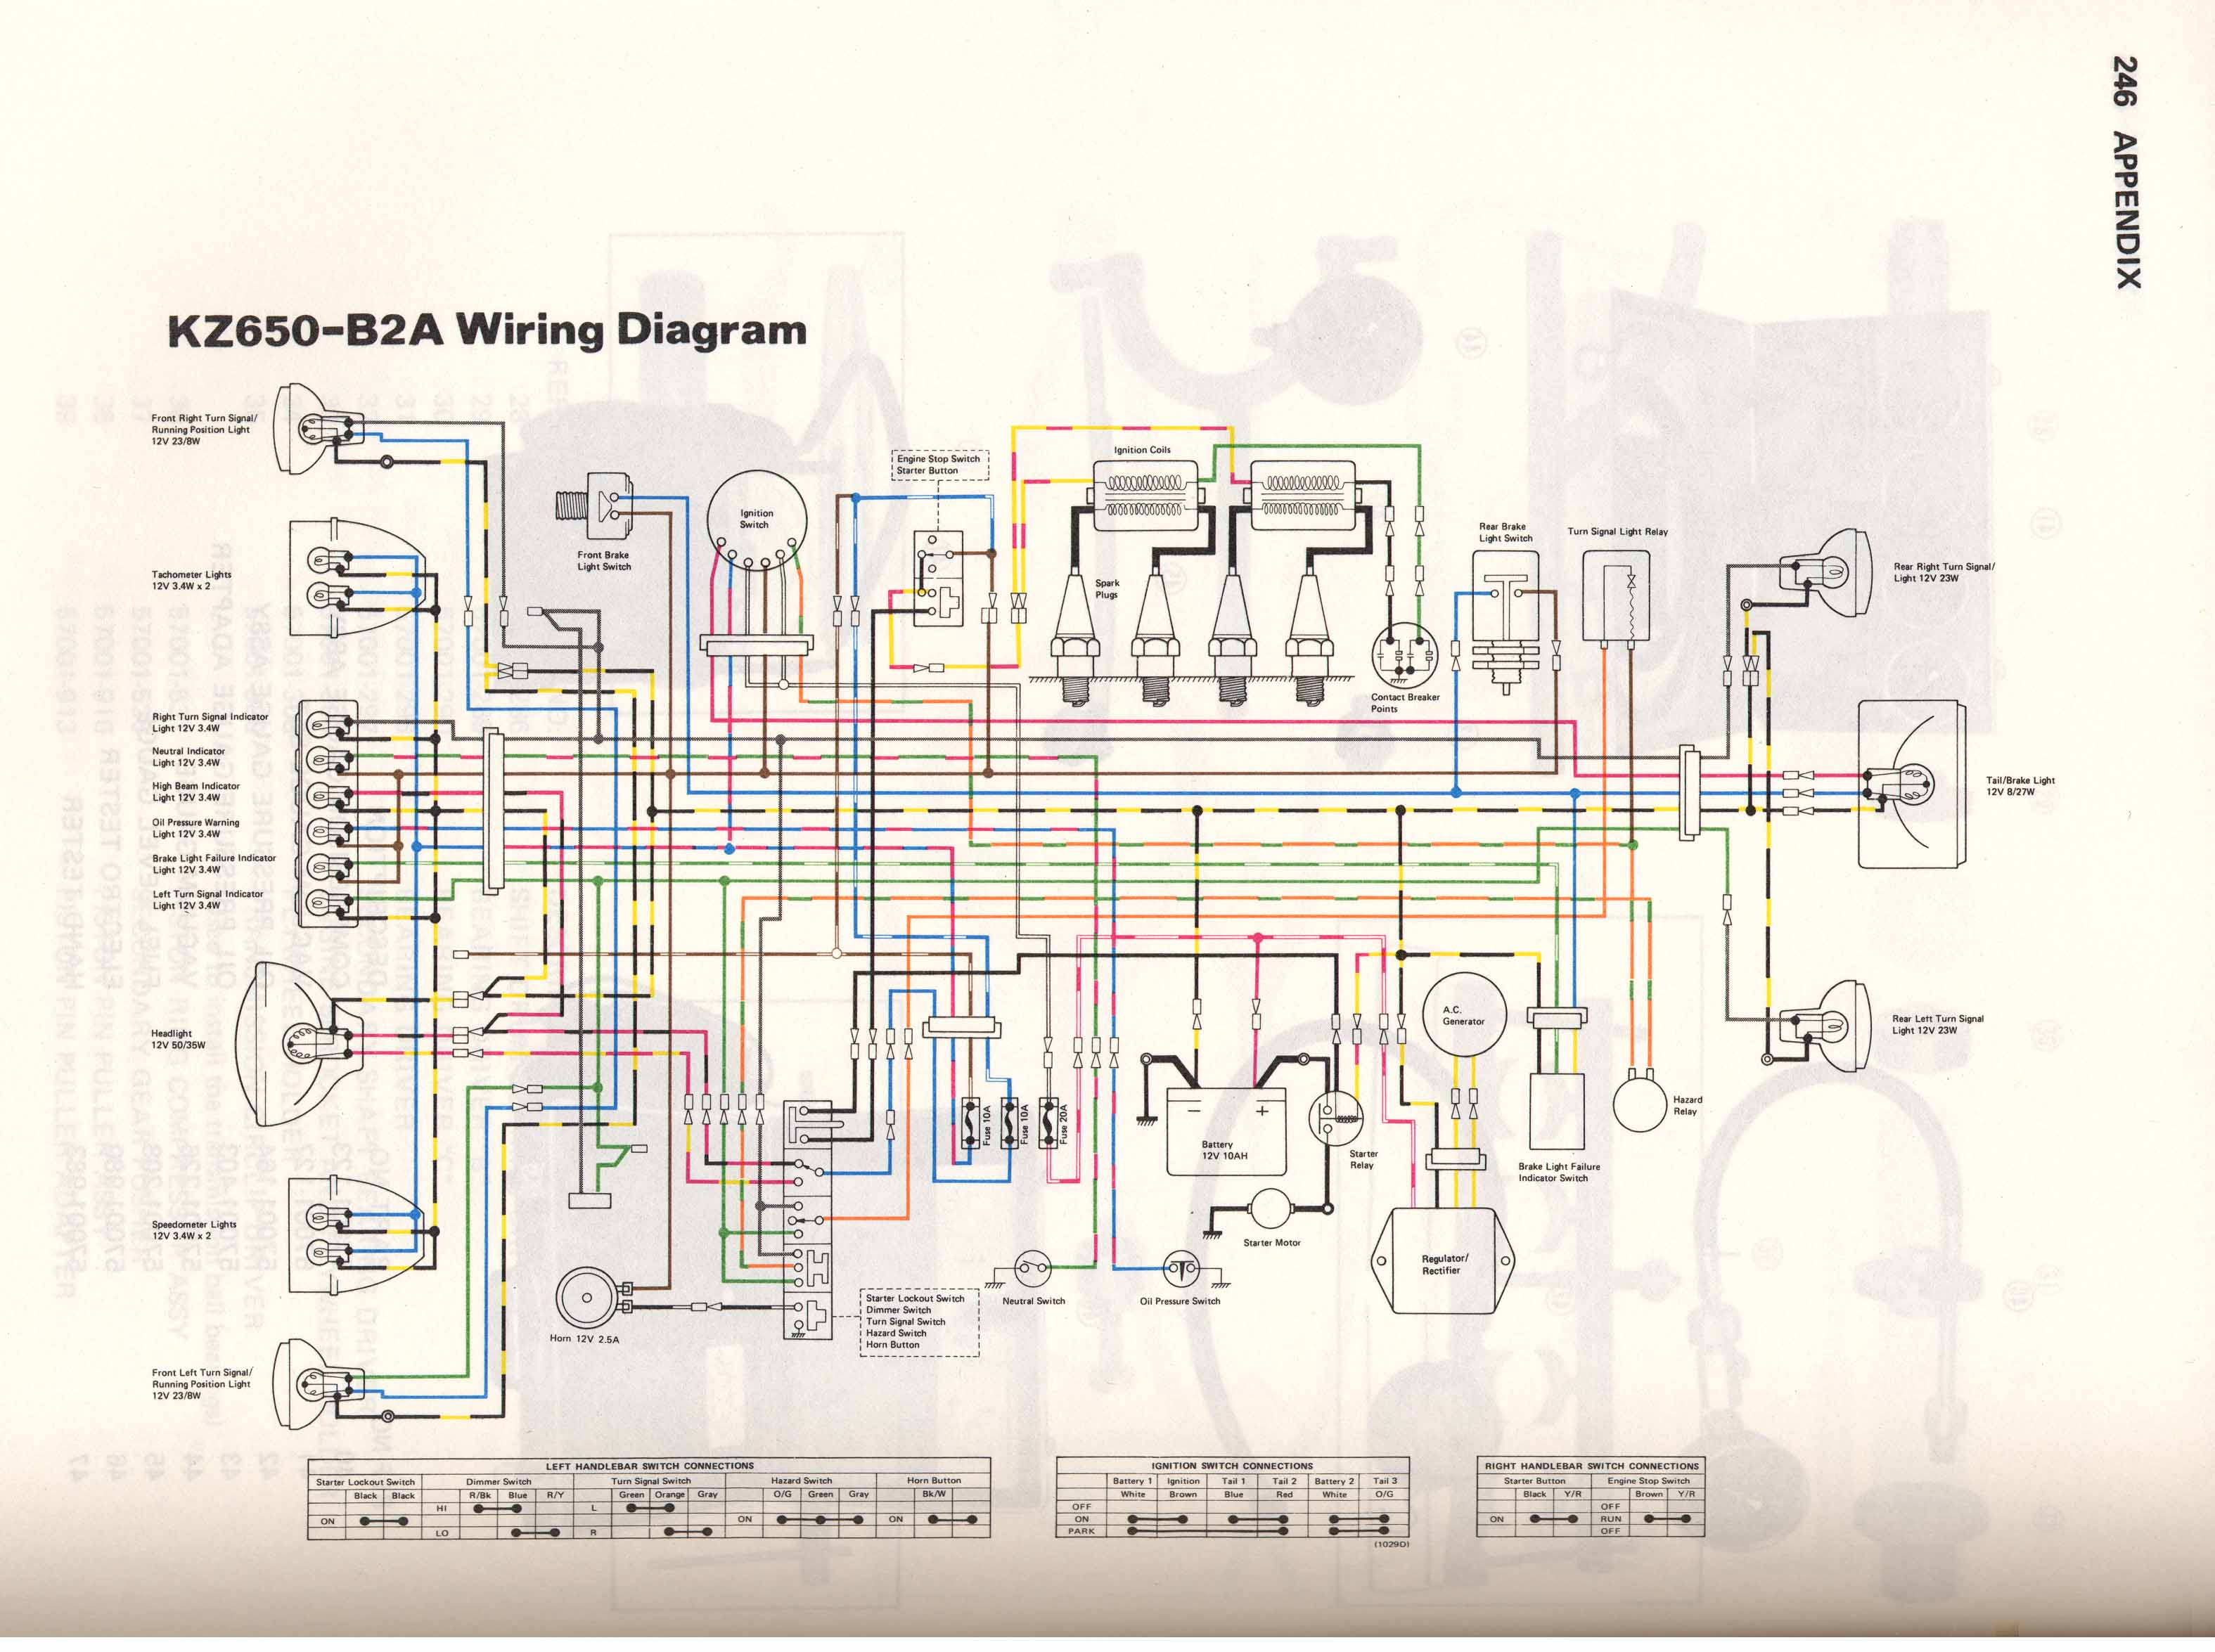 Kawasaki Kz650 Wiring Diagram Free Download Schematic 100 Get Image About Scag Electrical Engine For Vulcan 800 Ke100